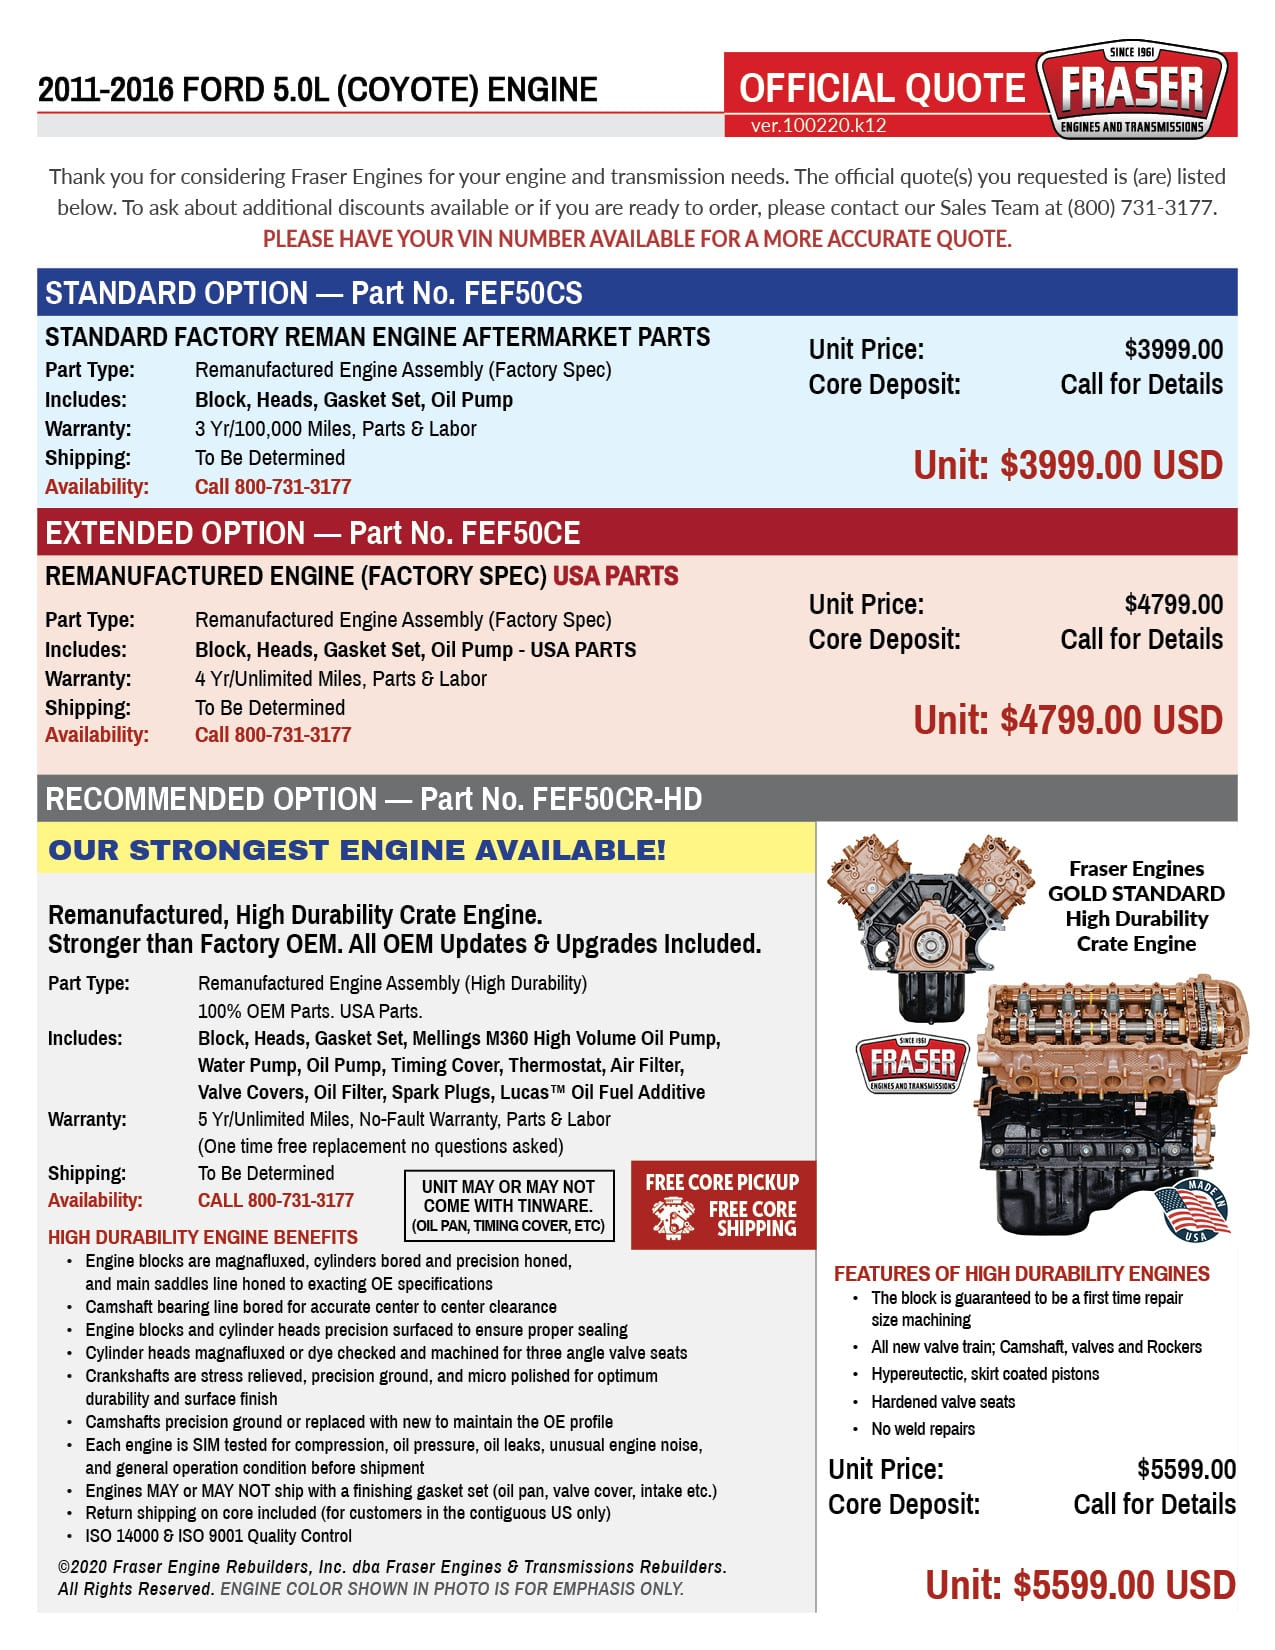 Ford 5.0L Coyote Engines